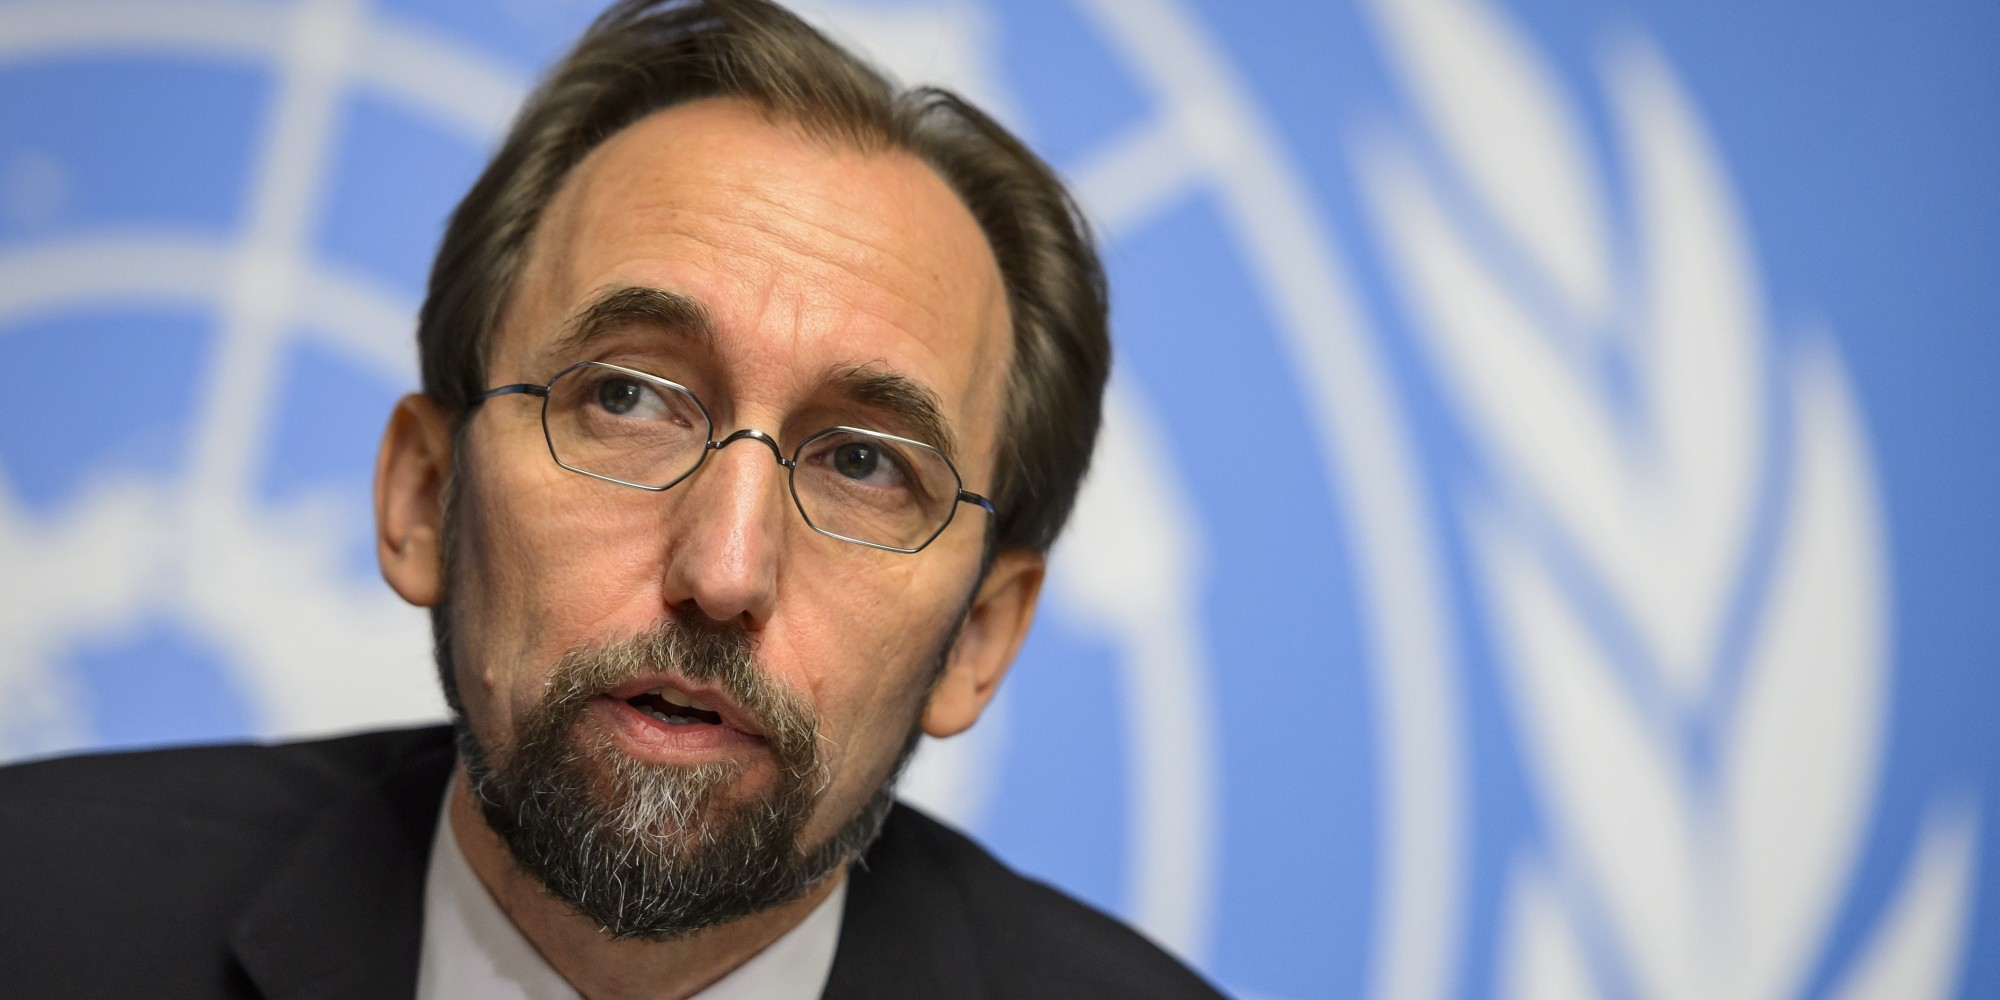 New High Commissioner of the United Nations (UN) for Human Rights, Zeid Ra'ad al-Hussein of Jordan, attends a press conference on October 16, 2014 in Geneva. AFP PHOTO / FABRICE COFFRINI (Photo credit should read FABRICE COFFRINI/AFP/Getty Images)